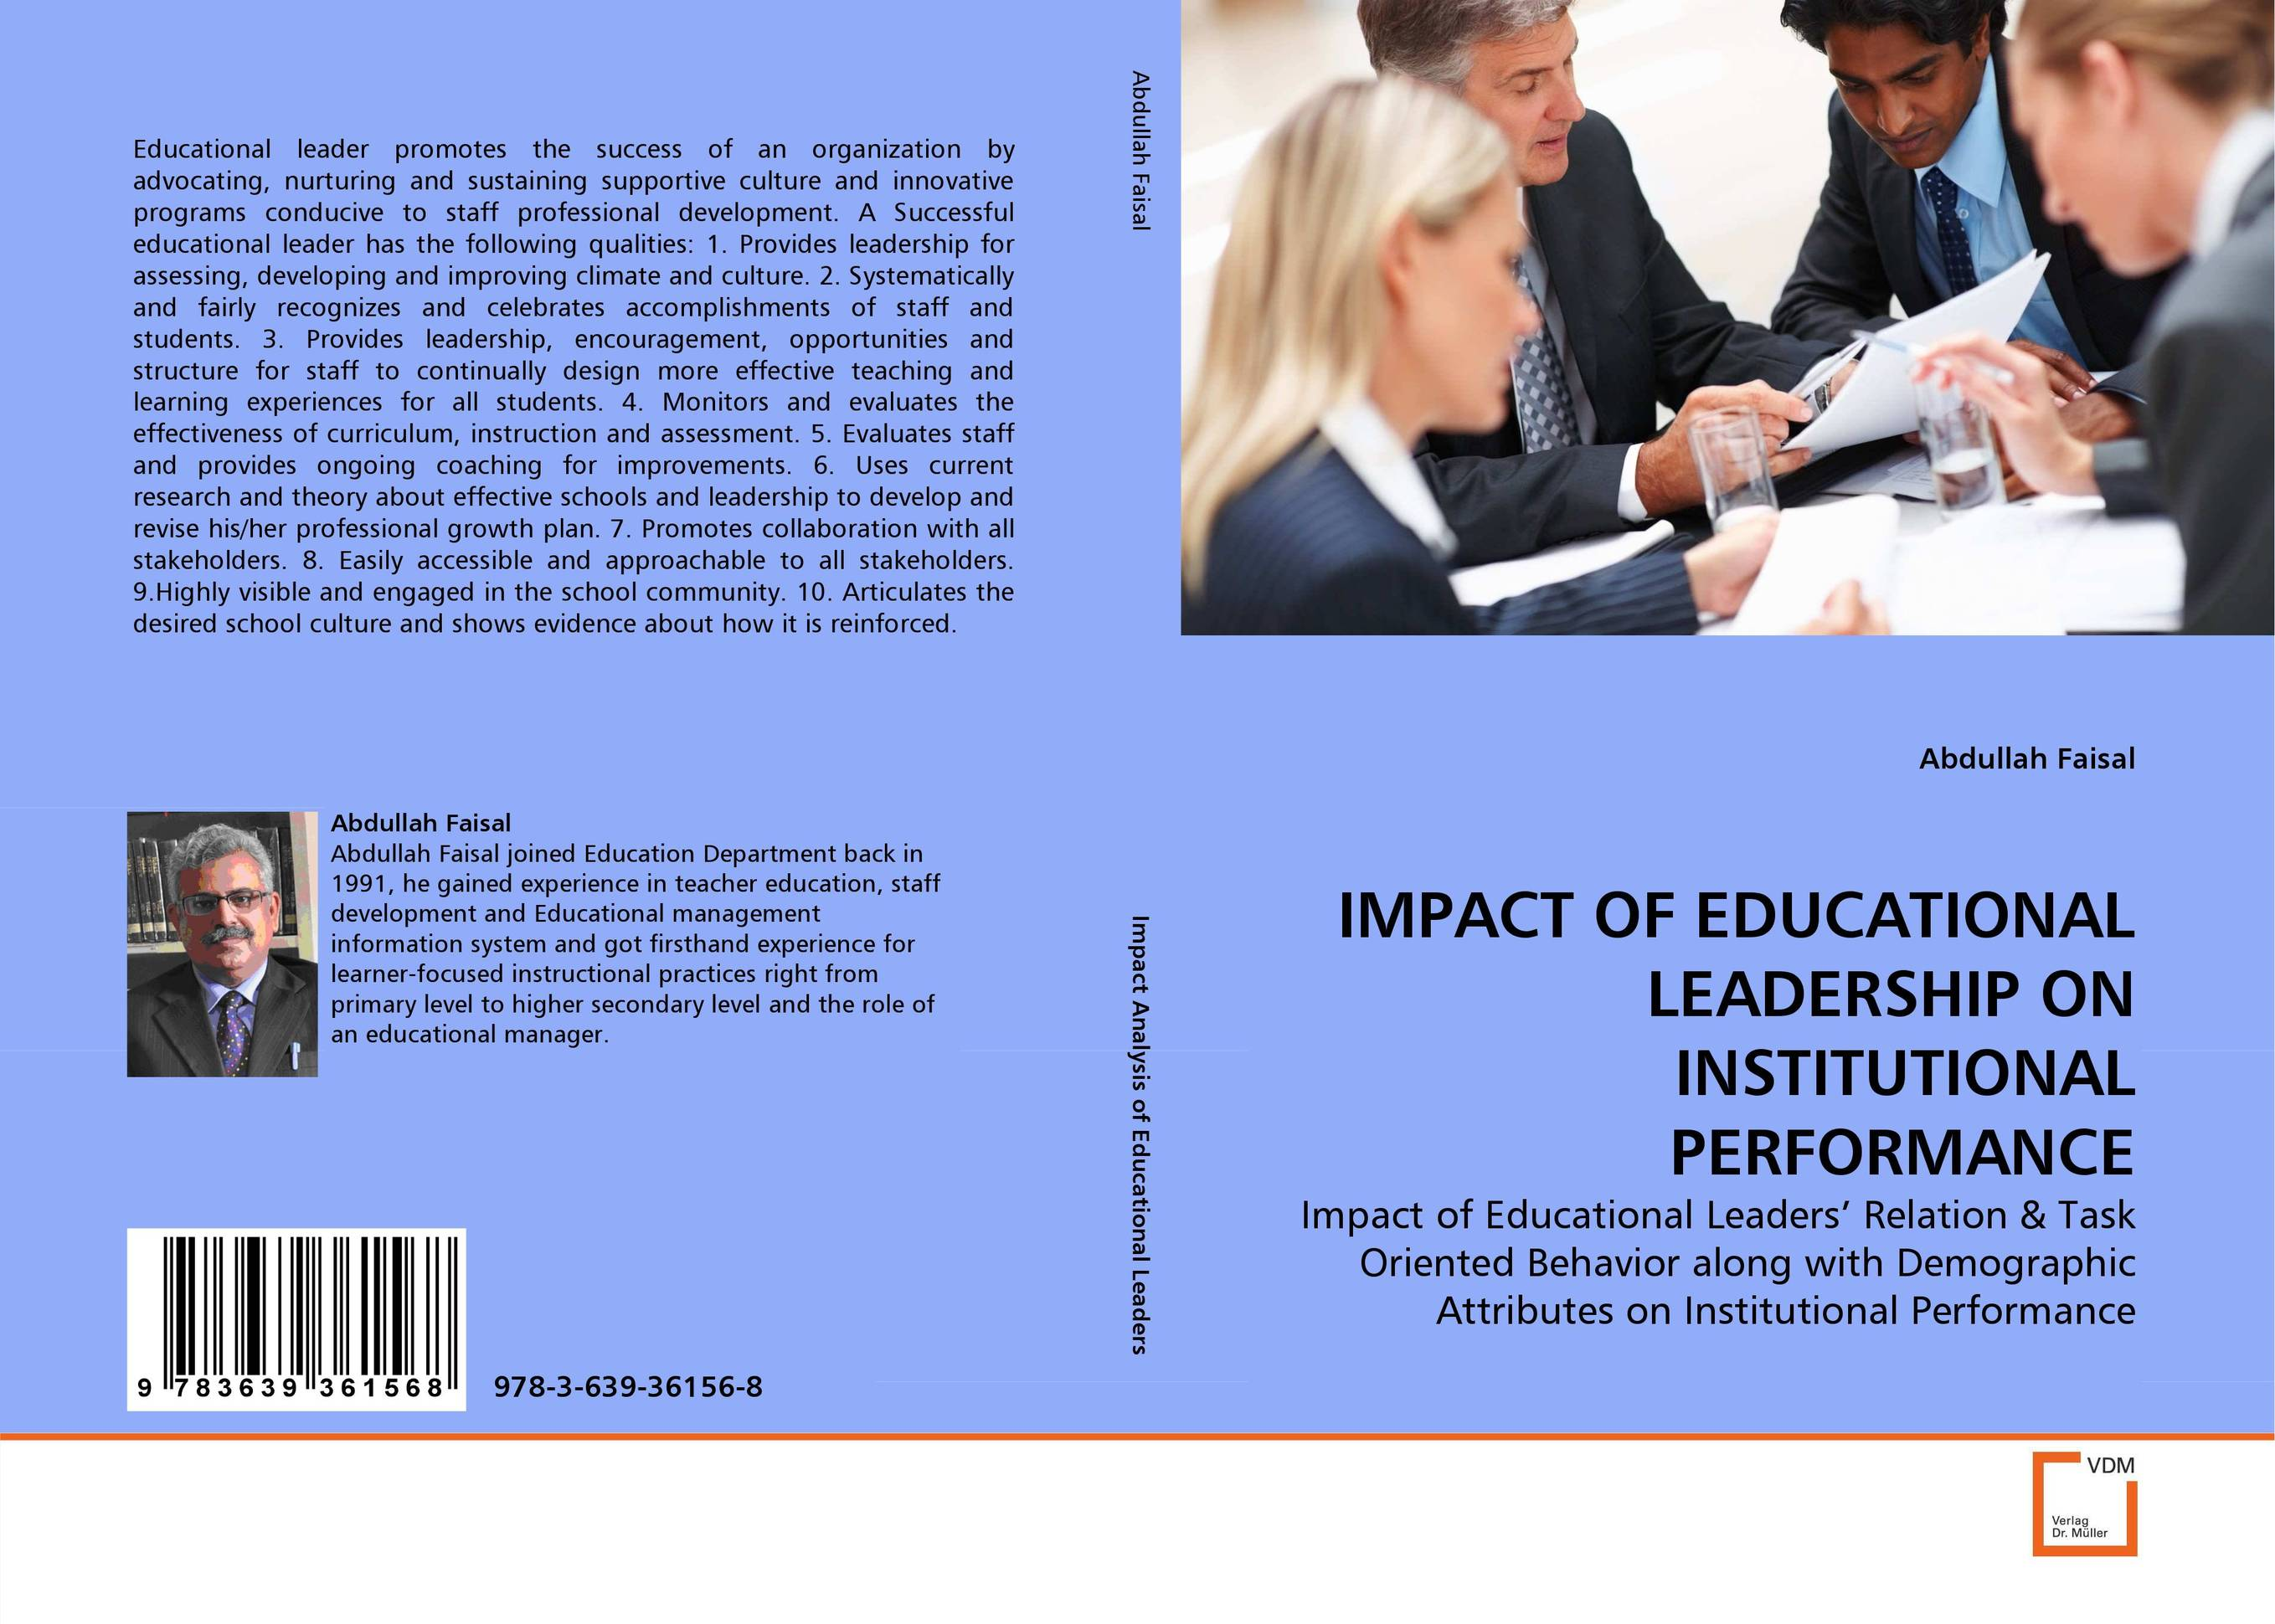 IMPACT OF EDUCATIONAL LEADERSHIP ON INSTITUTIONAL PERFORMANCE leadership the spirit and the structure